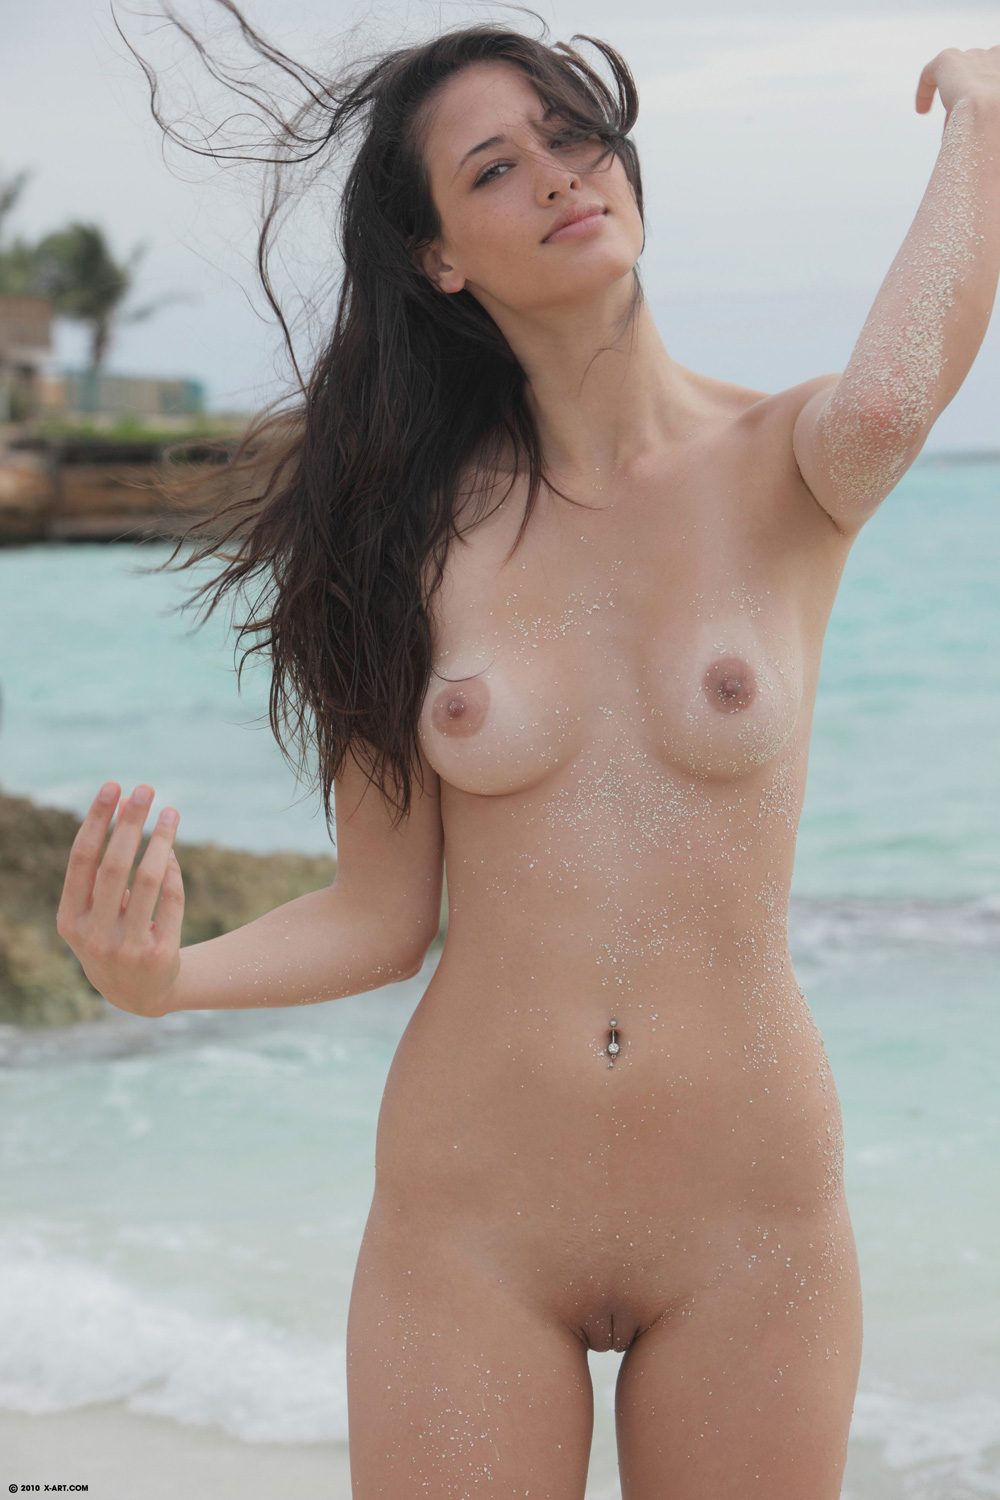 French voyeur boobs 2015 a la plage 3